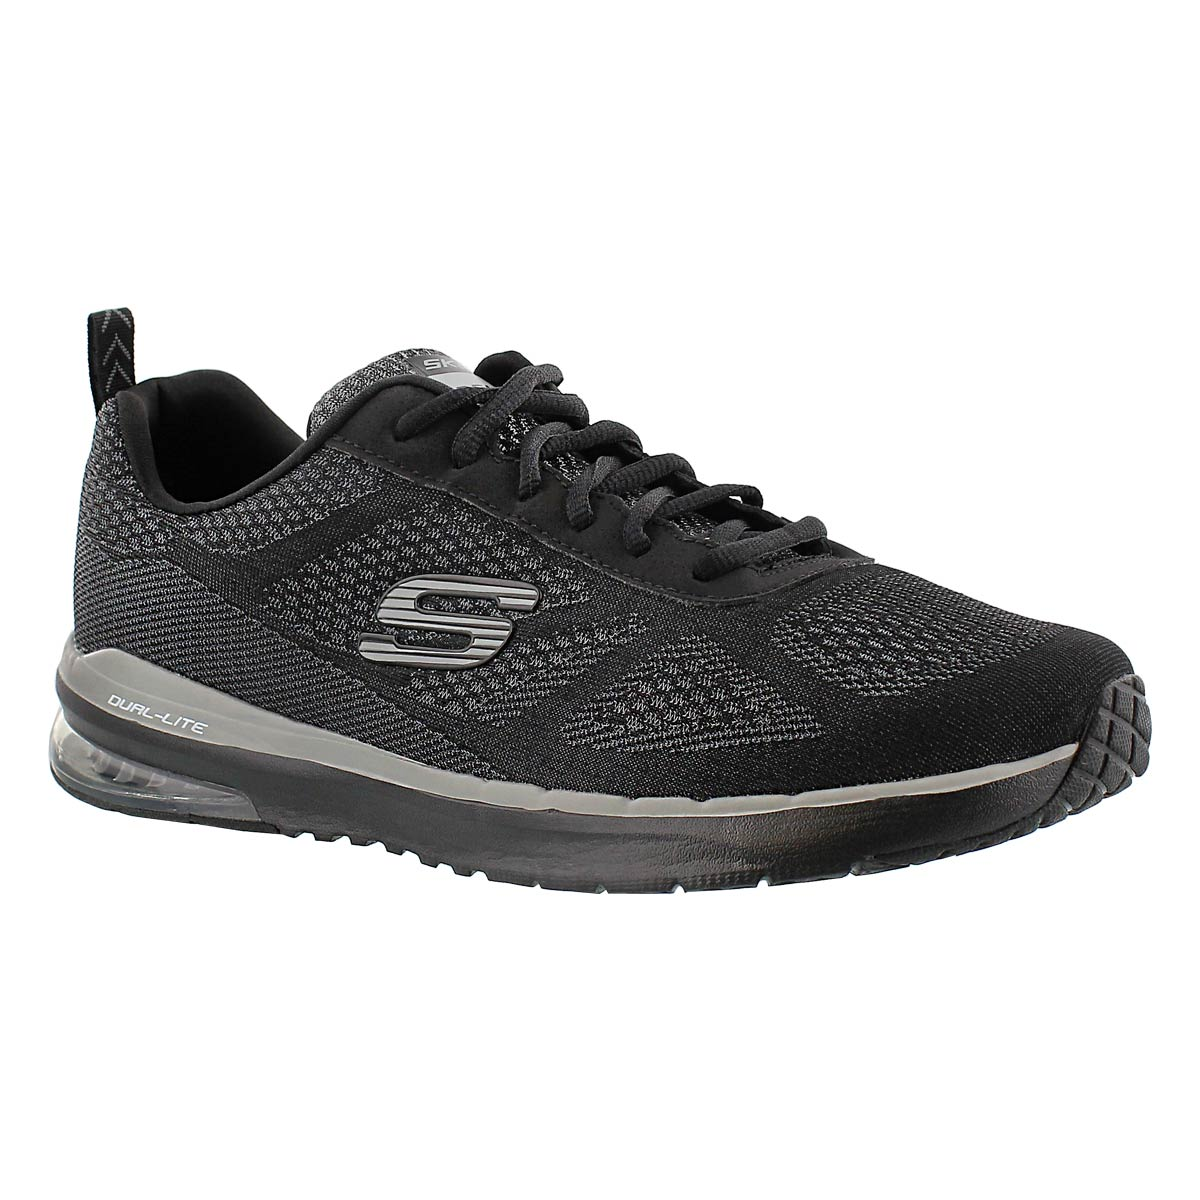 Mns Skech-Air Infinity blk running shoe